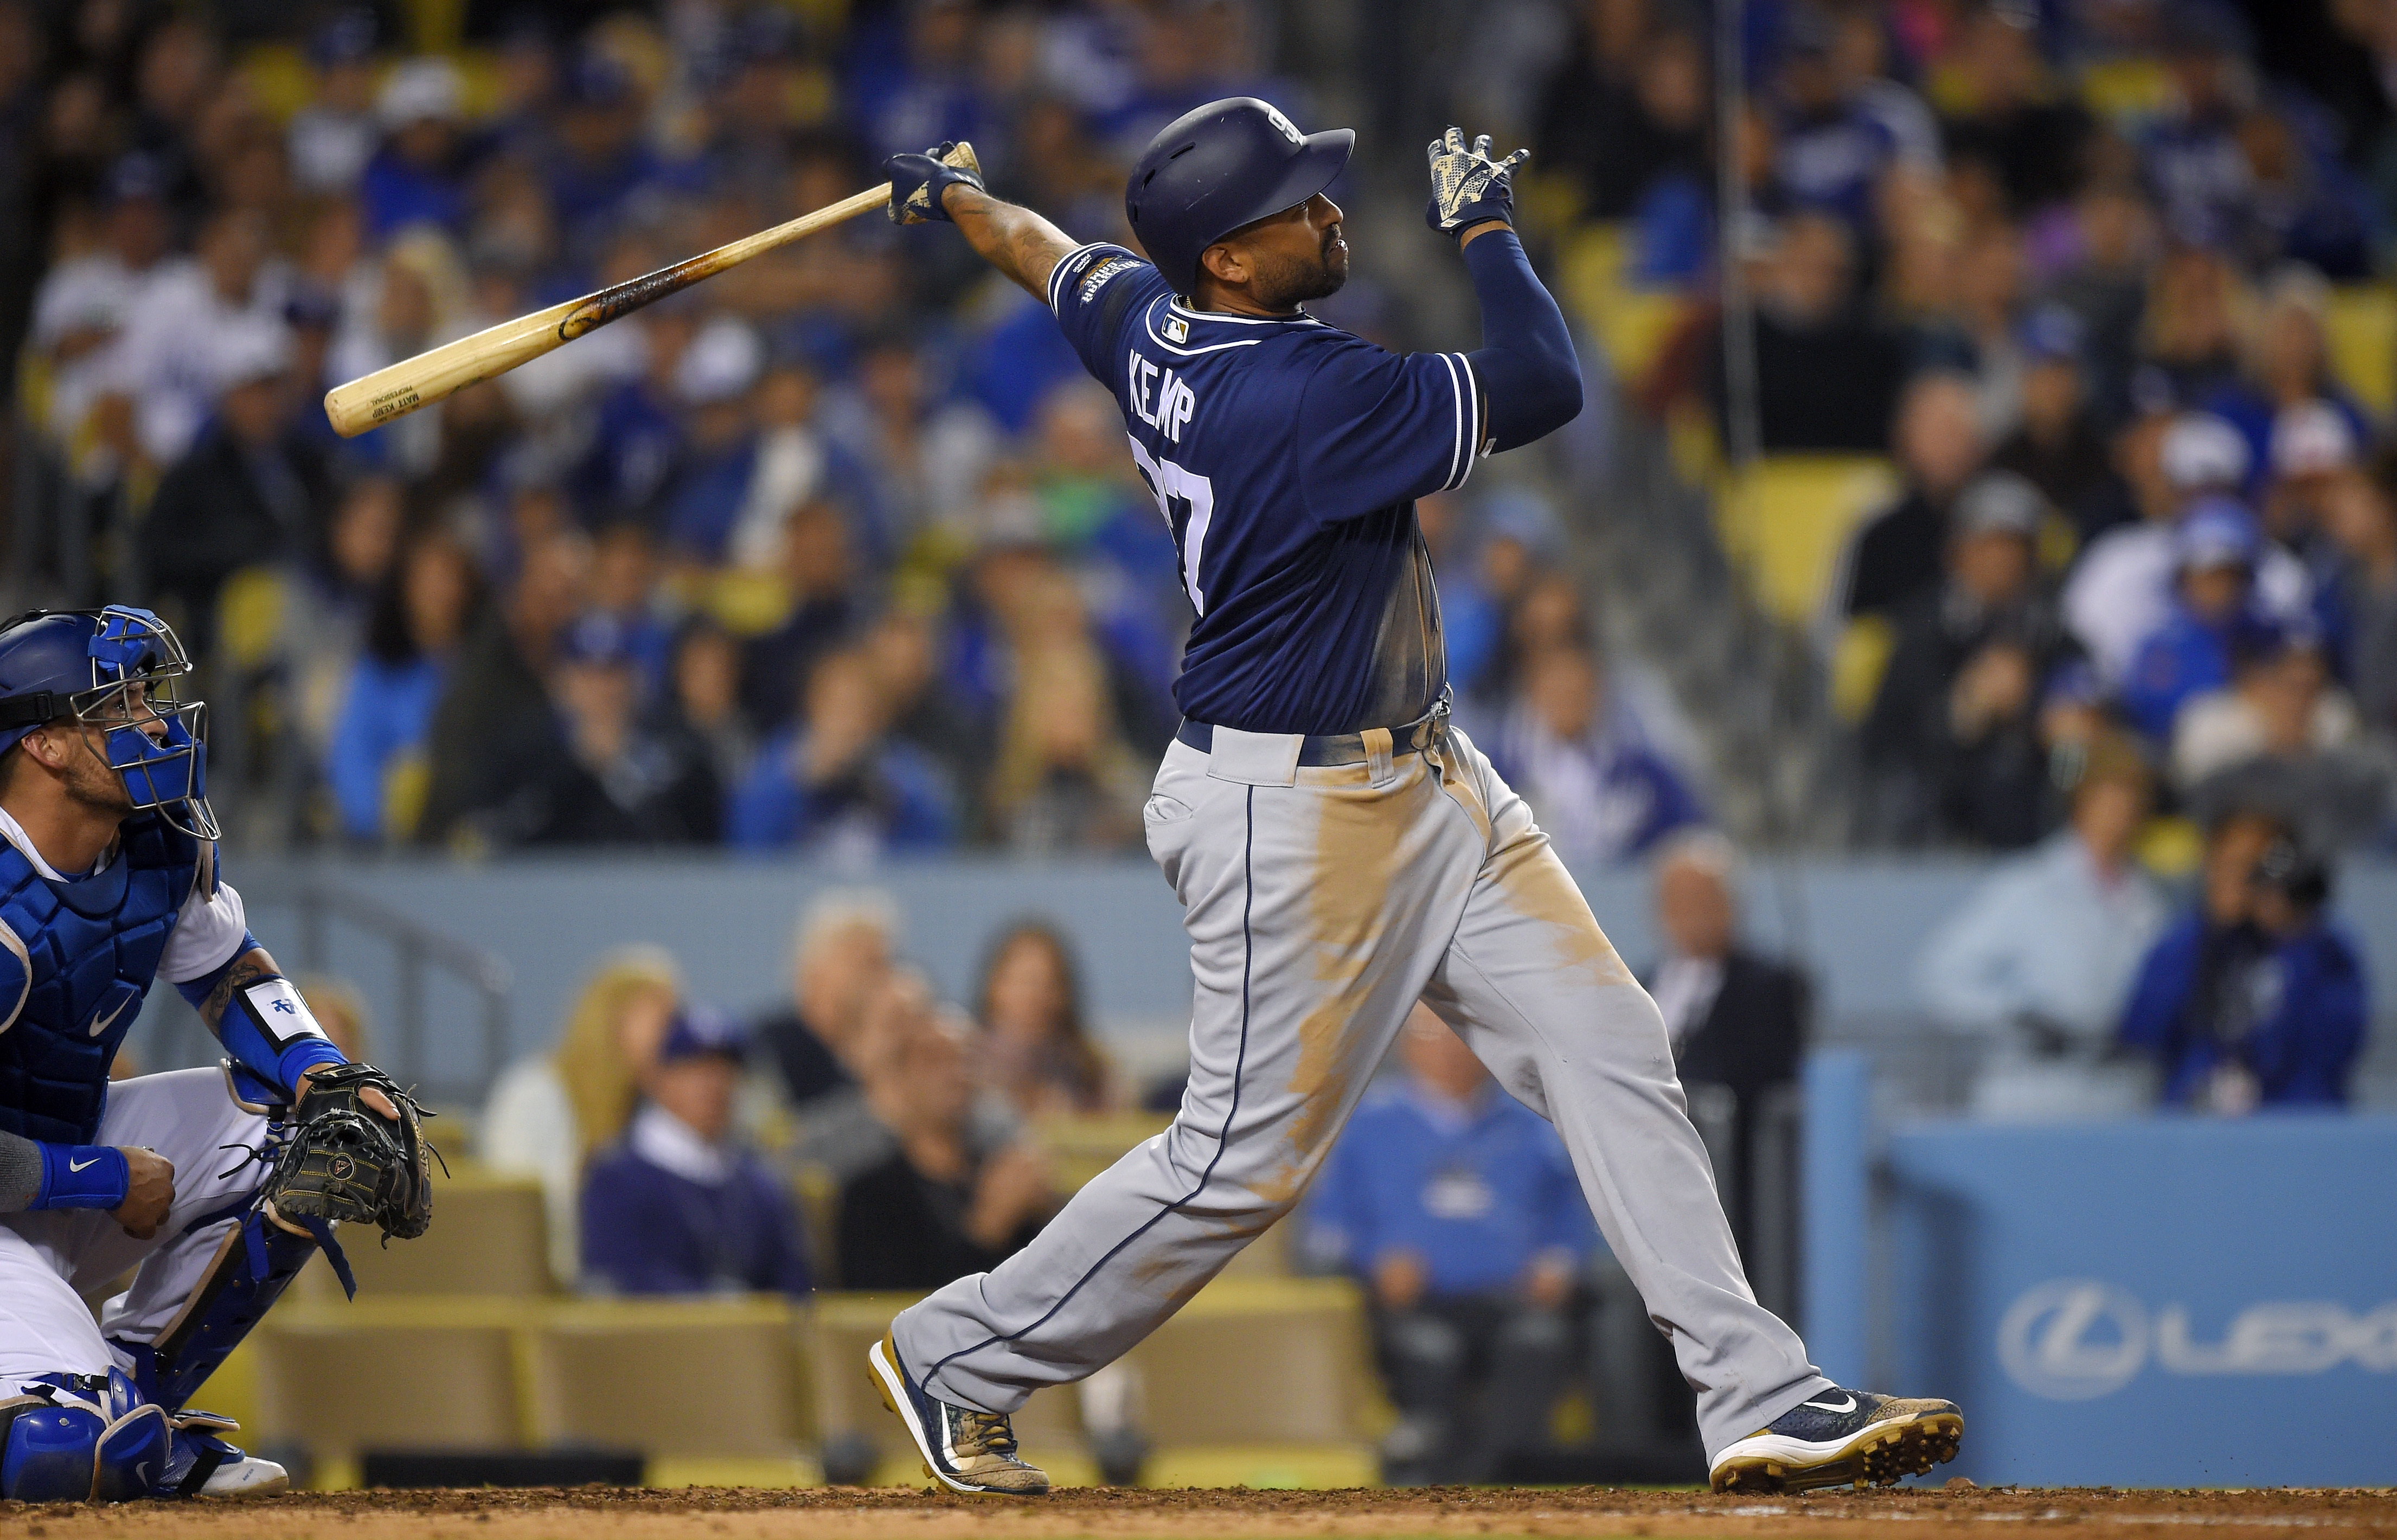 San Diego Padres' Matt Kemp watches his three-run home run, along with Los Angeles Dodgers catcher Yasmani Grandal, during the eighth inning of a baseball game Friday, April 29, 2016, in Los Angeles. (AP Photo/Mark J. Terrill)